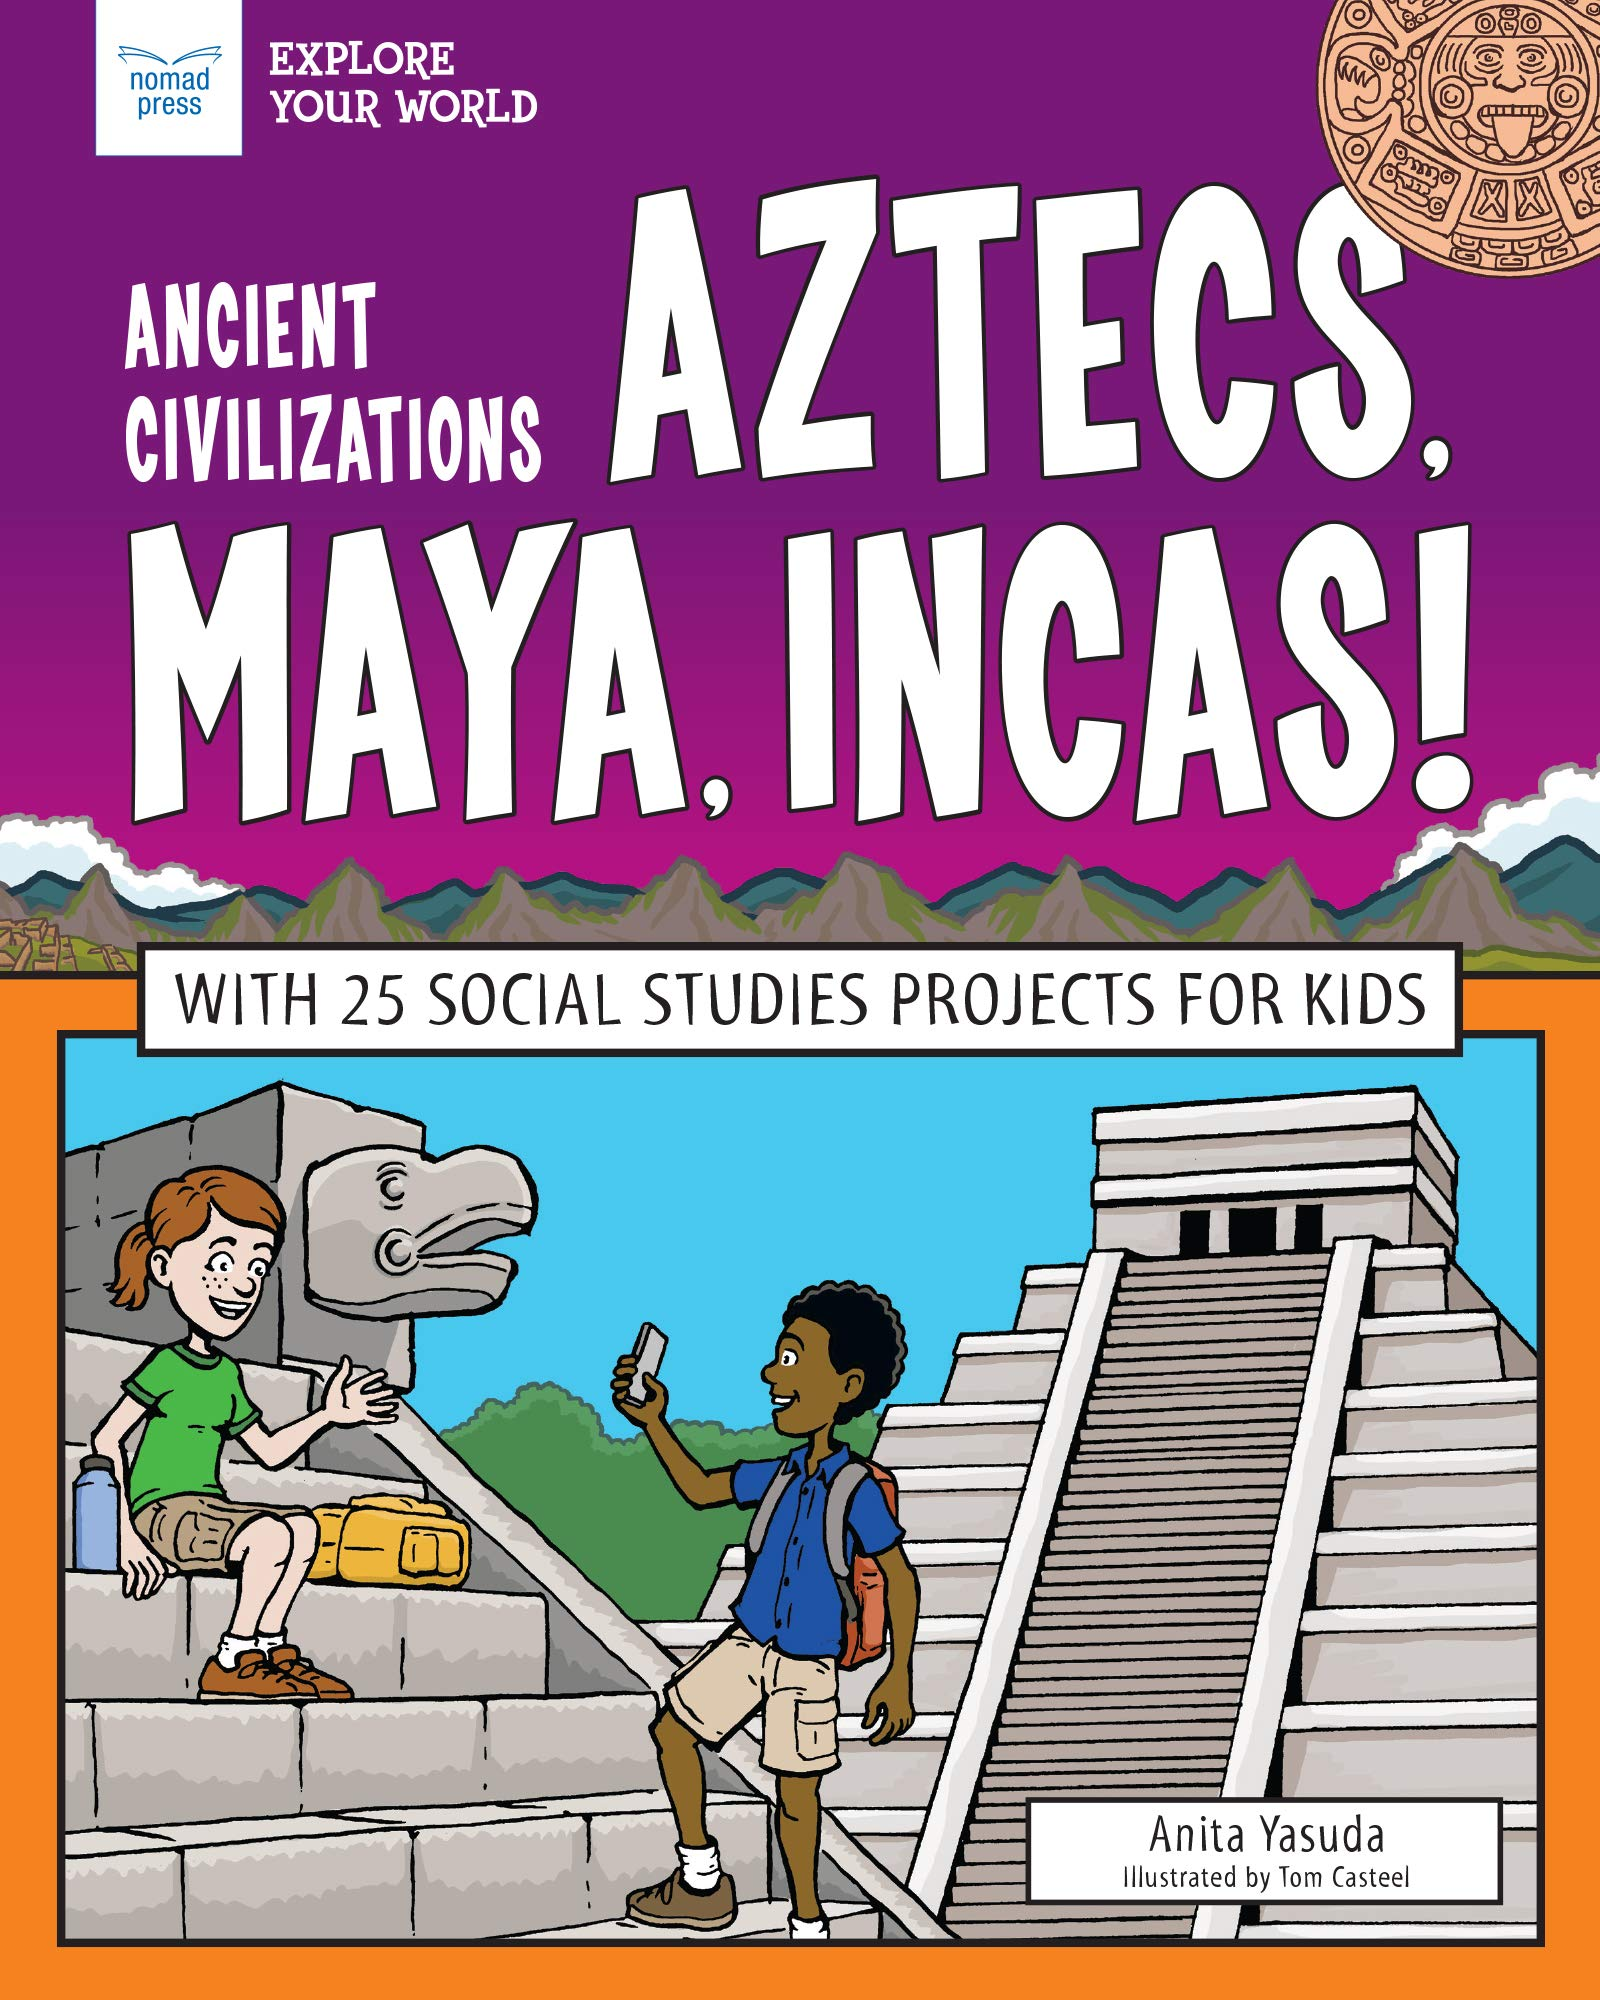 Ancient Civilizations: Aztecs, Maya, Incas!: With 25 Social Studies Projects for Kids